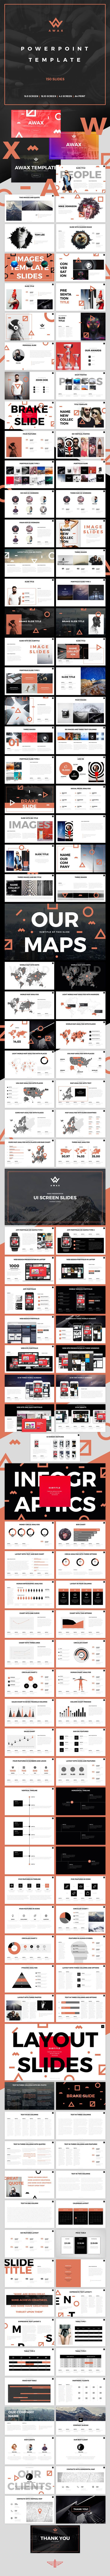 AWAX Powerpoint Template. Download here: http://graphicriver.net/item/awax-powerpoint-template/15559268?ref=ksioks